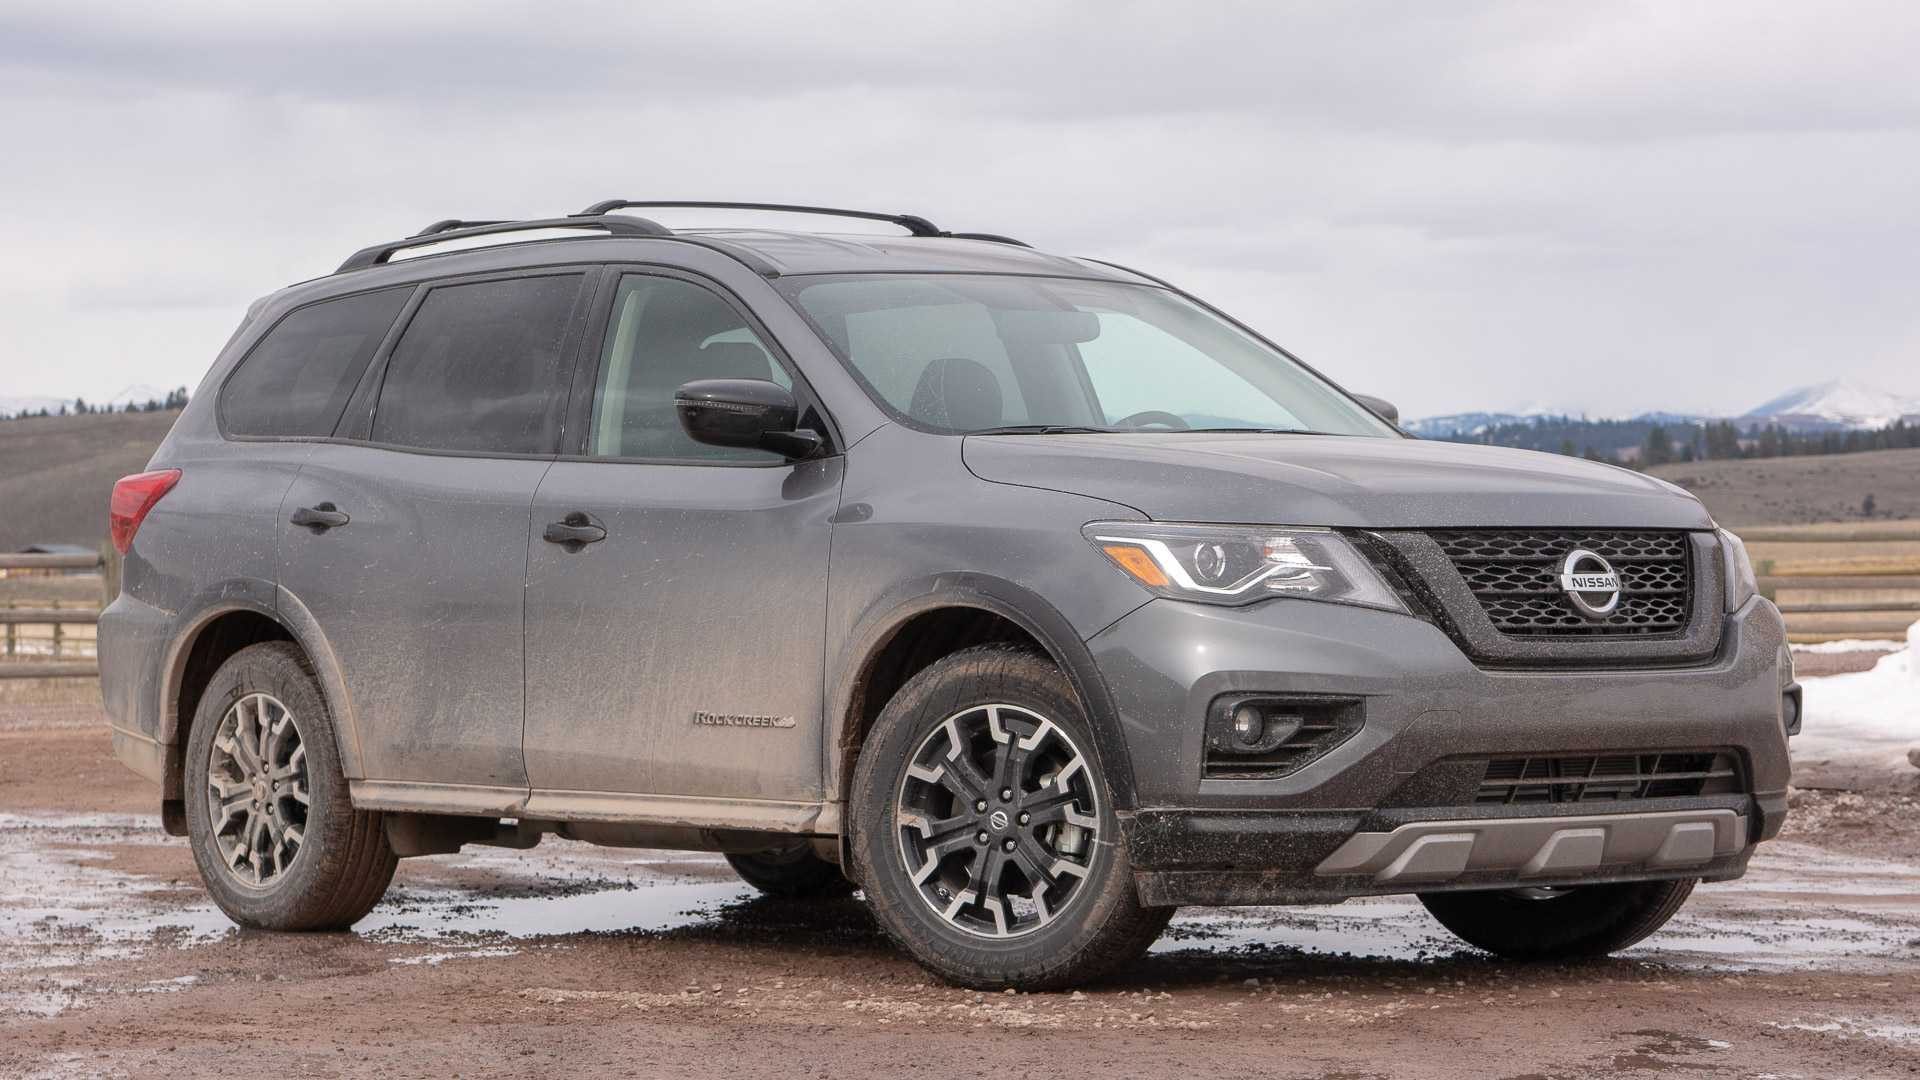 2019 Nissan Pathfinder: Design, Specs, Price | Upcoming Car Release 2020